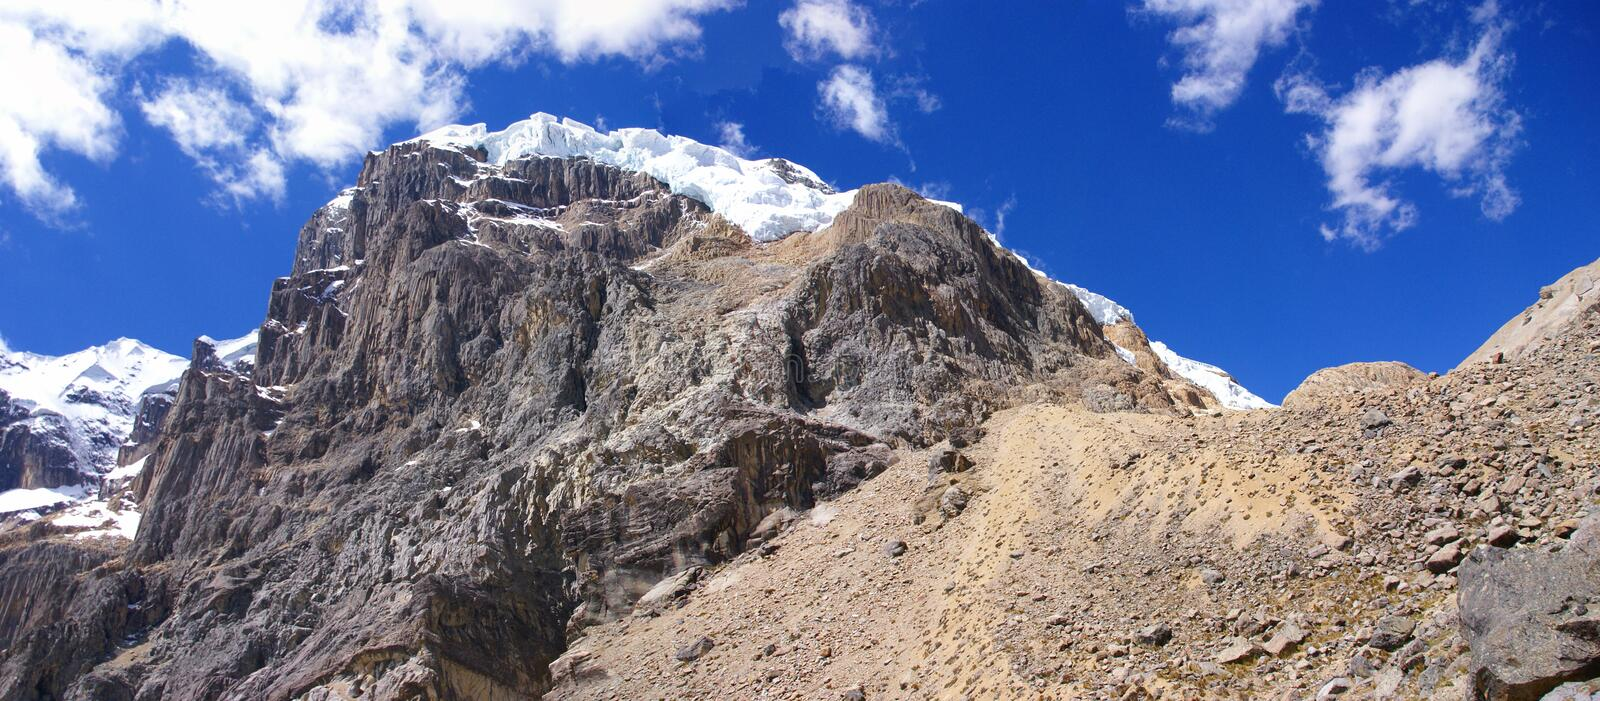 Hanging glaciers on steep rocky mountain, royalty free stock photography